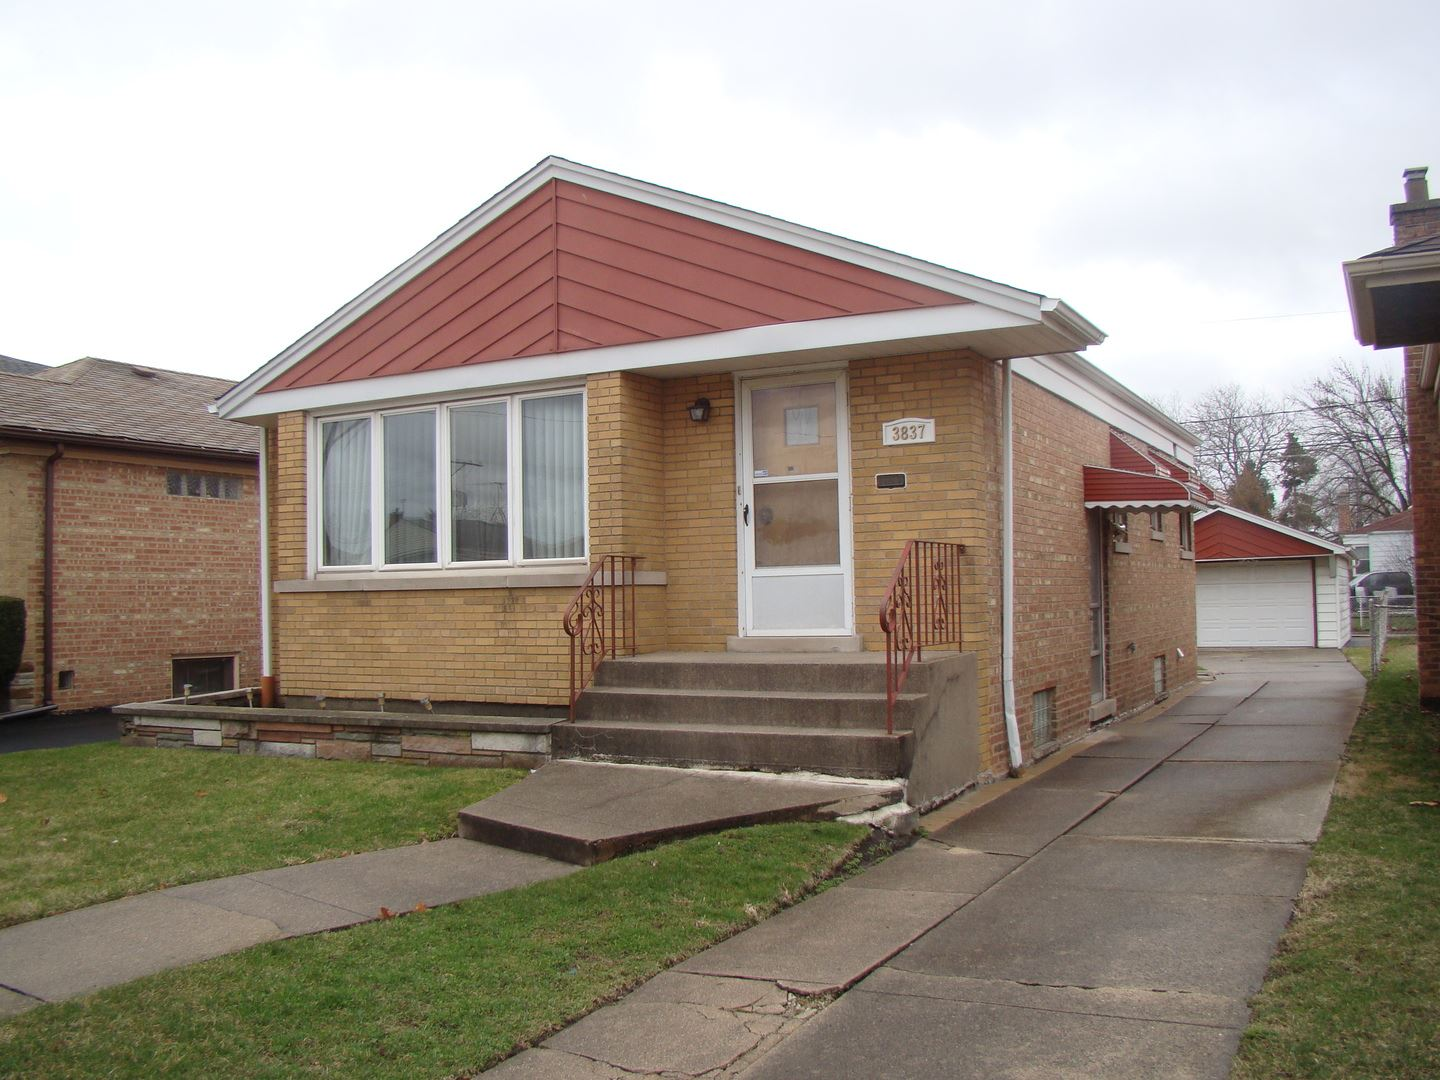 3837 W 80th Street, Chicago, IL 60652 - #: 10679203